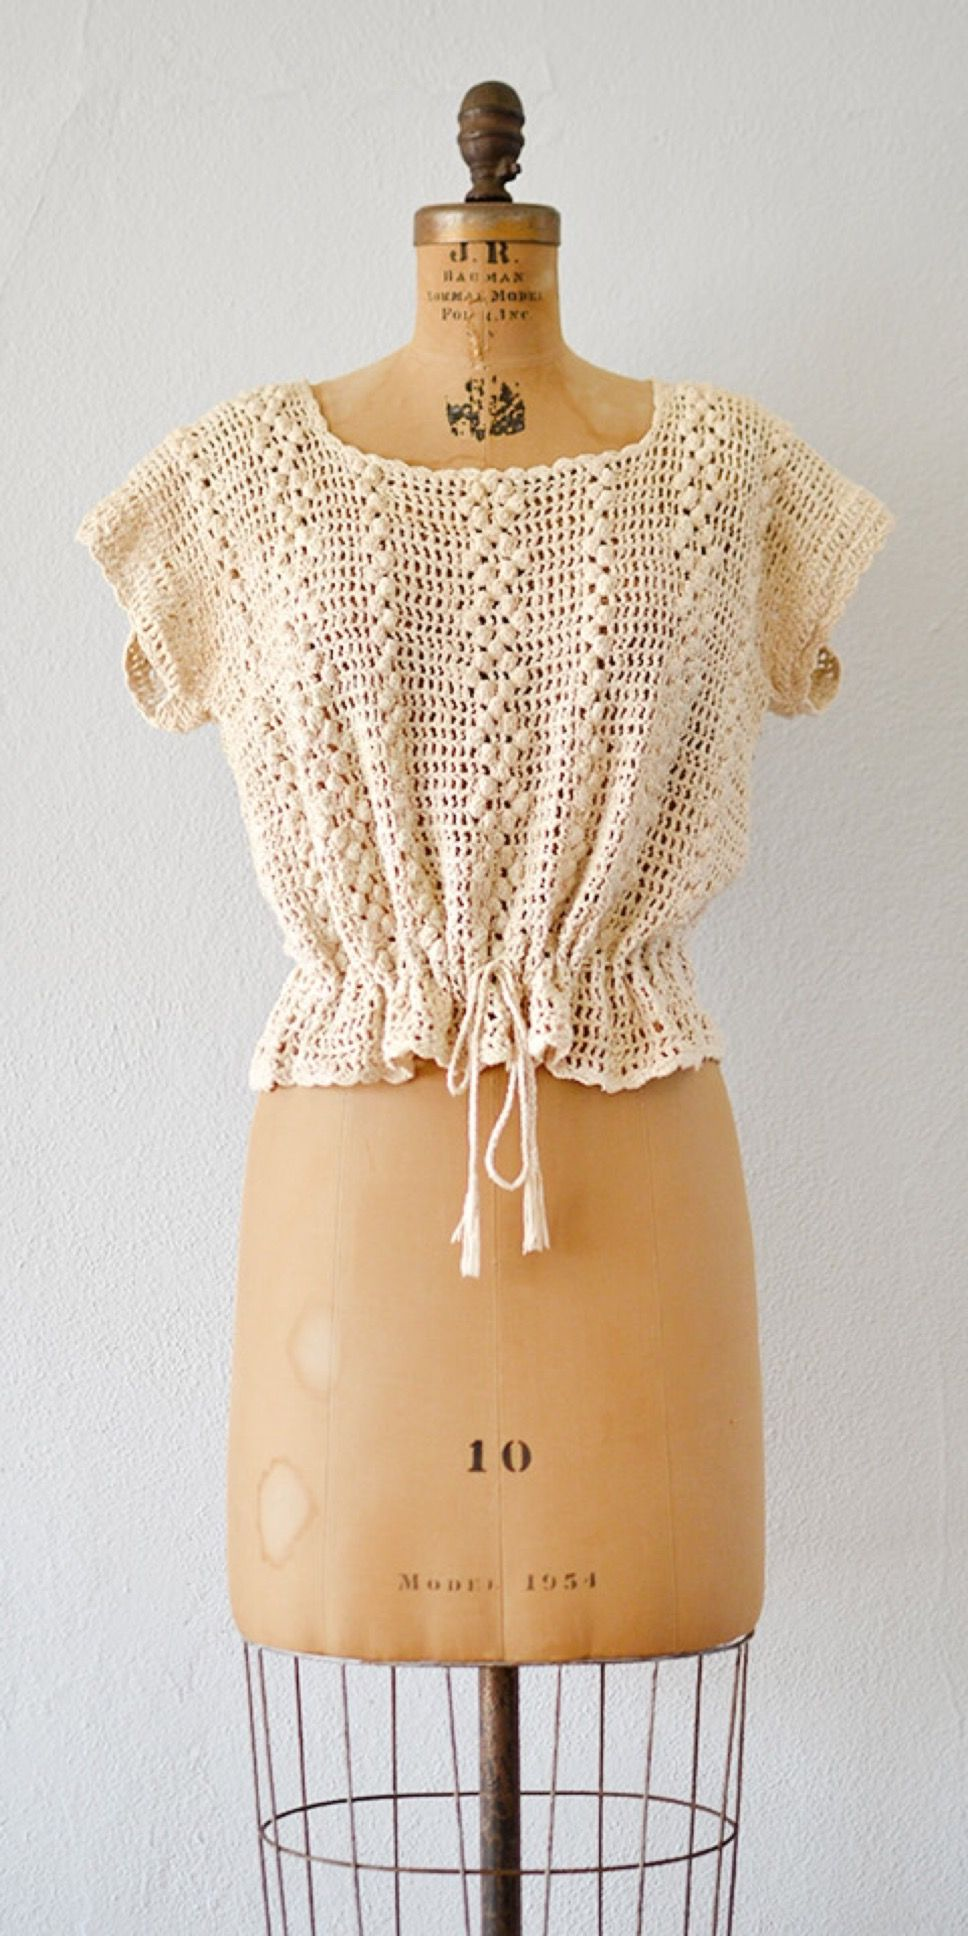 Vintage s crochet top baradine heights top from adored vintage